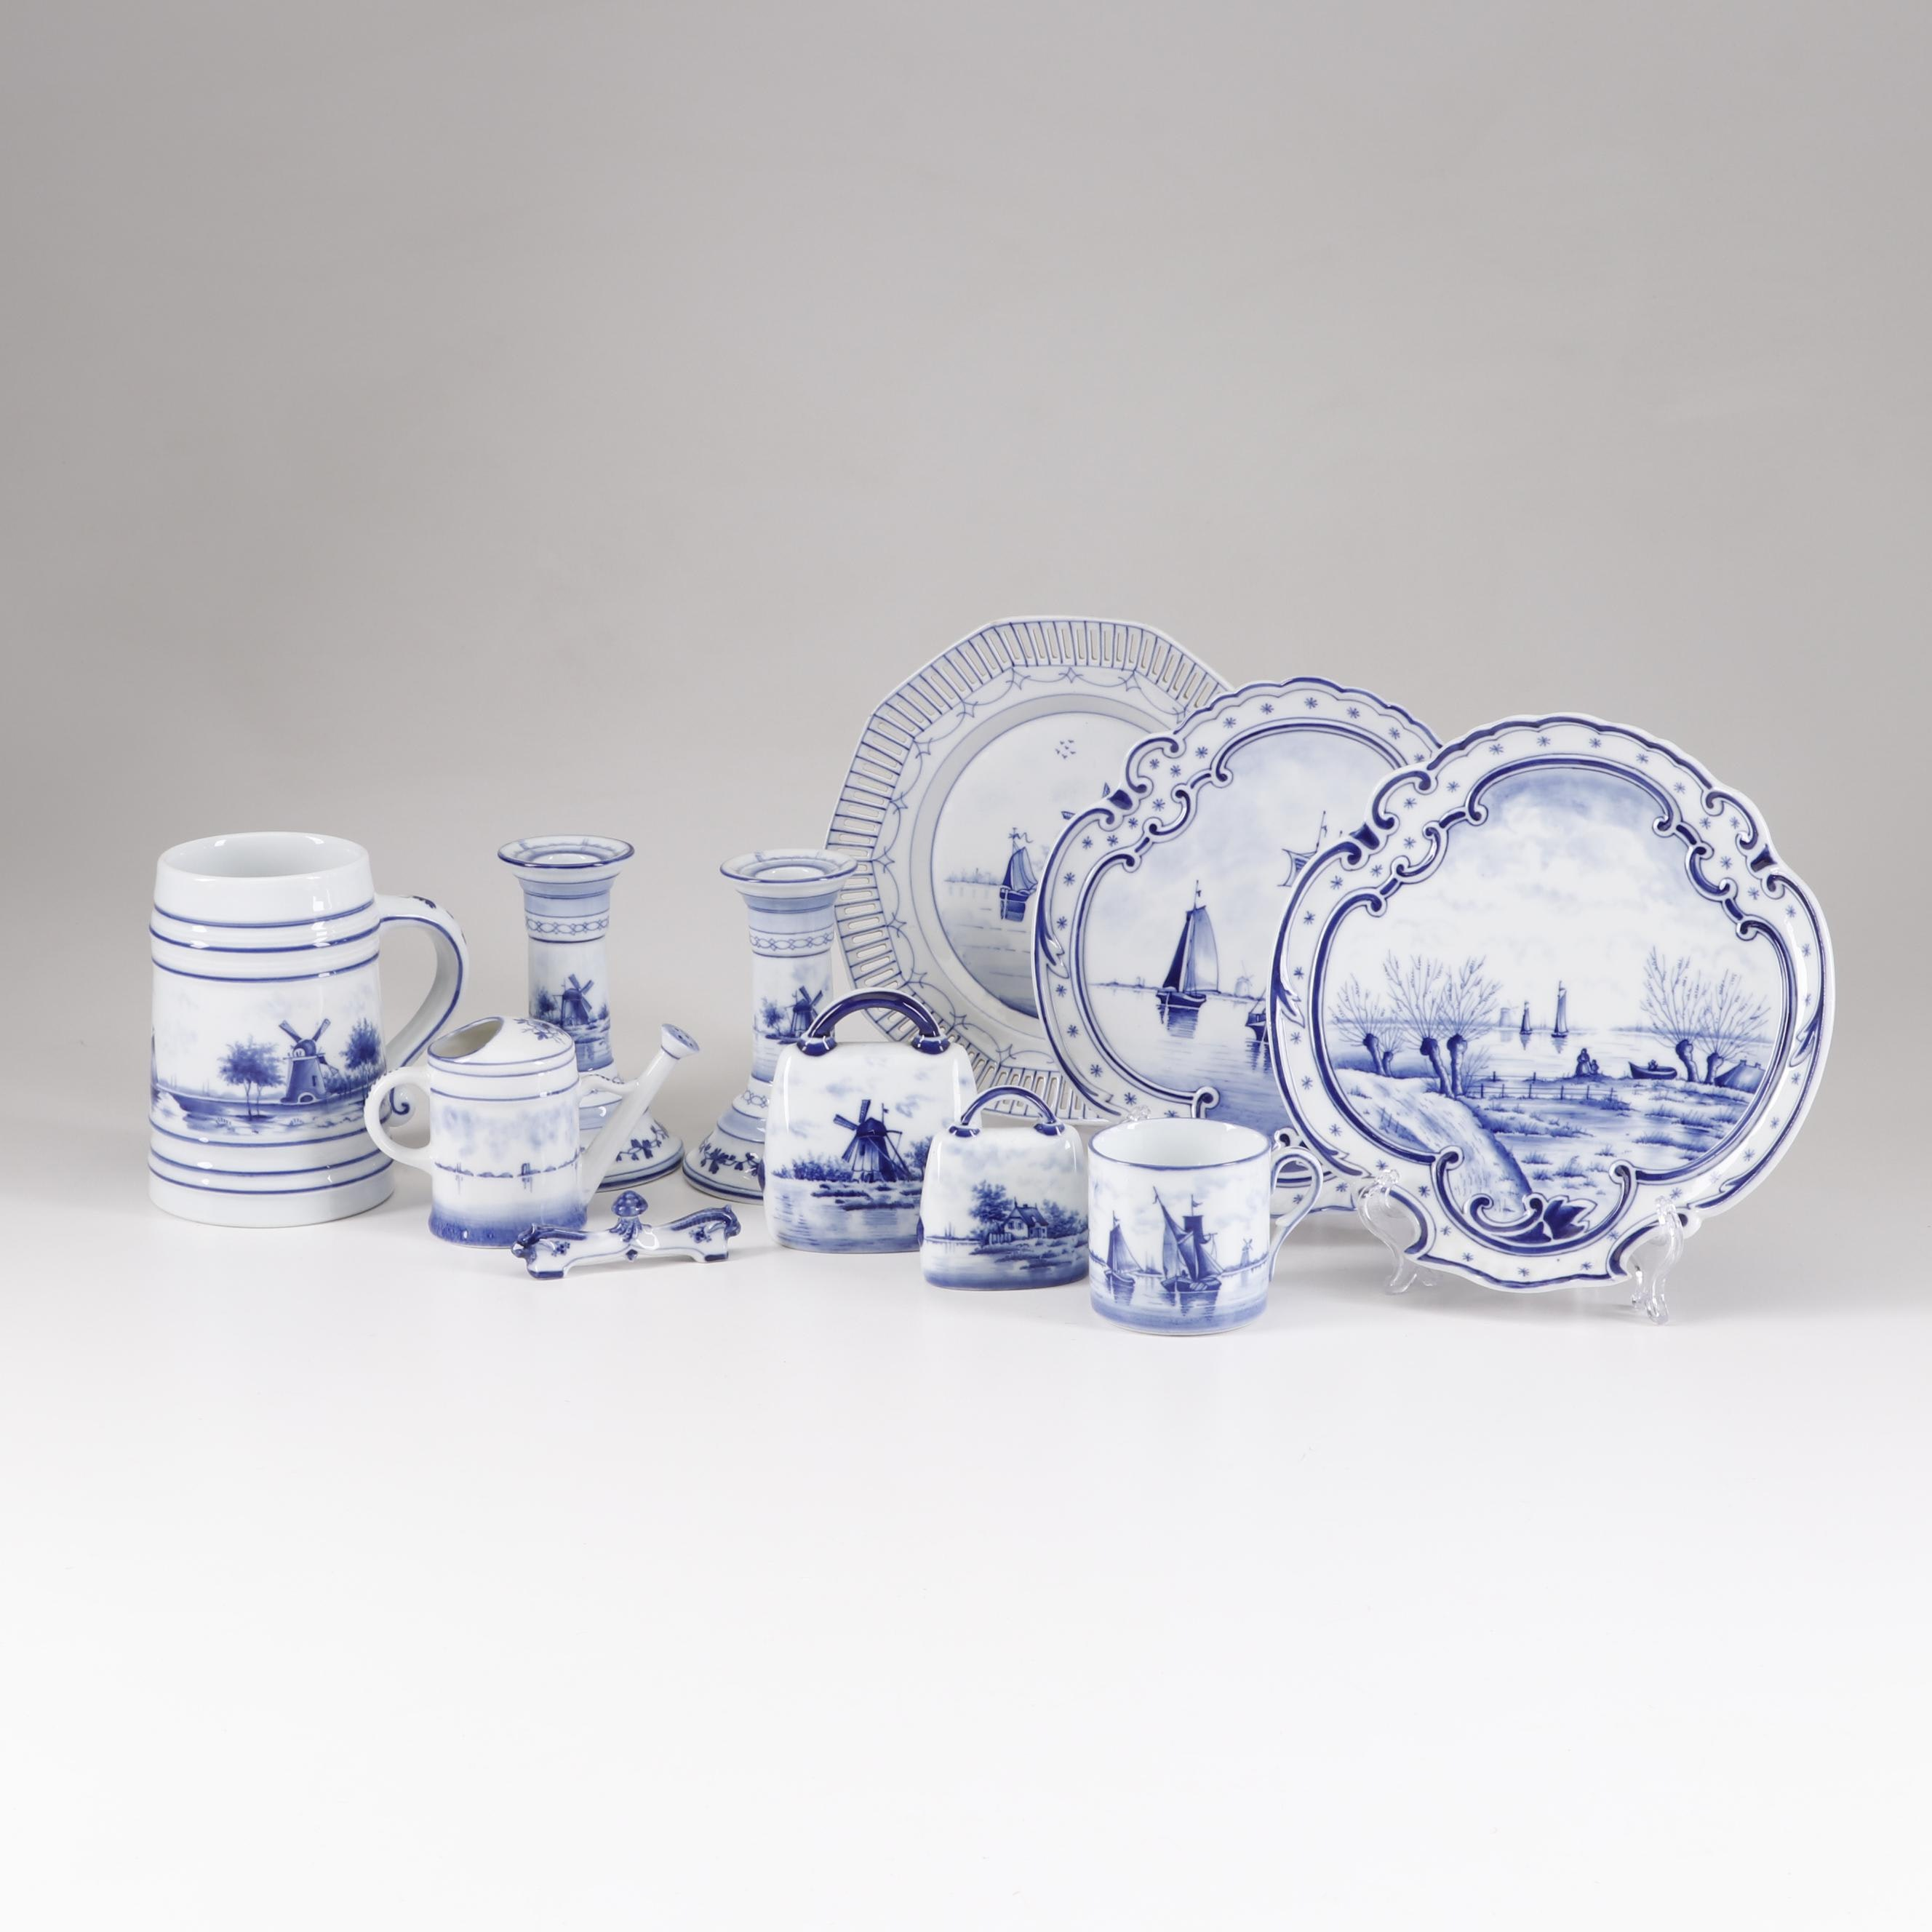 Delft and German Delft Style Tableware Including Schuman